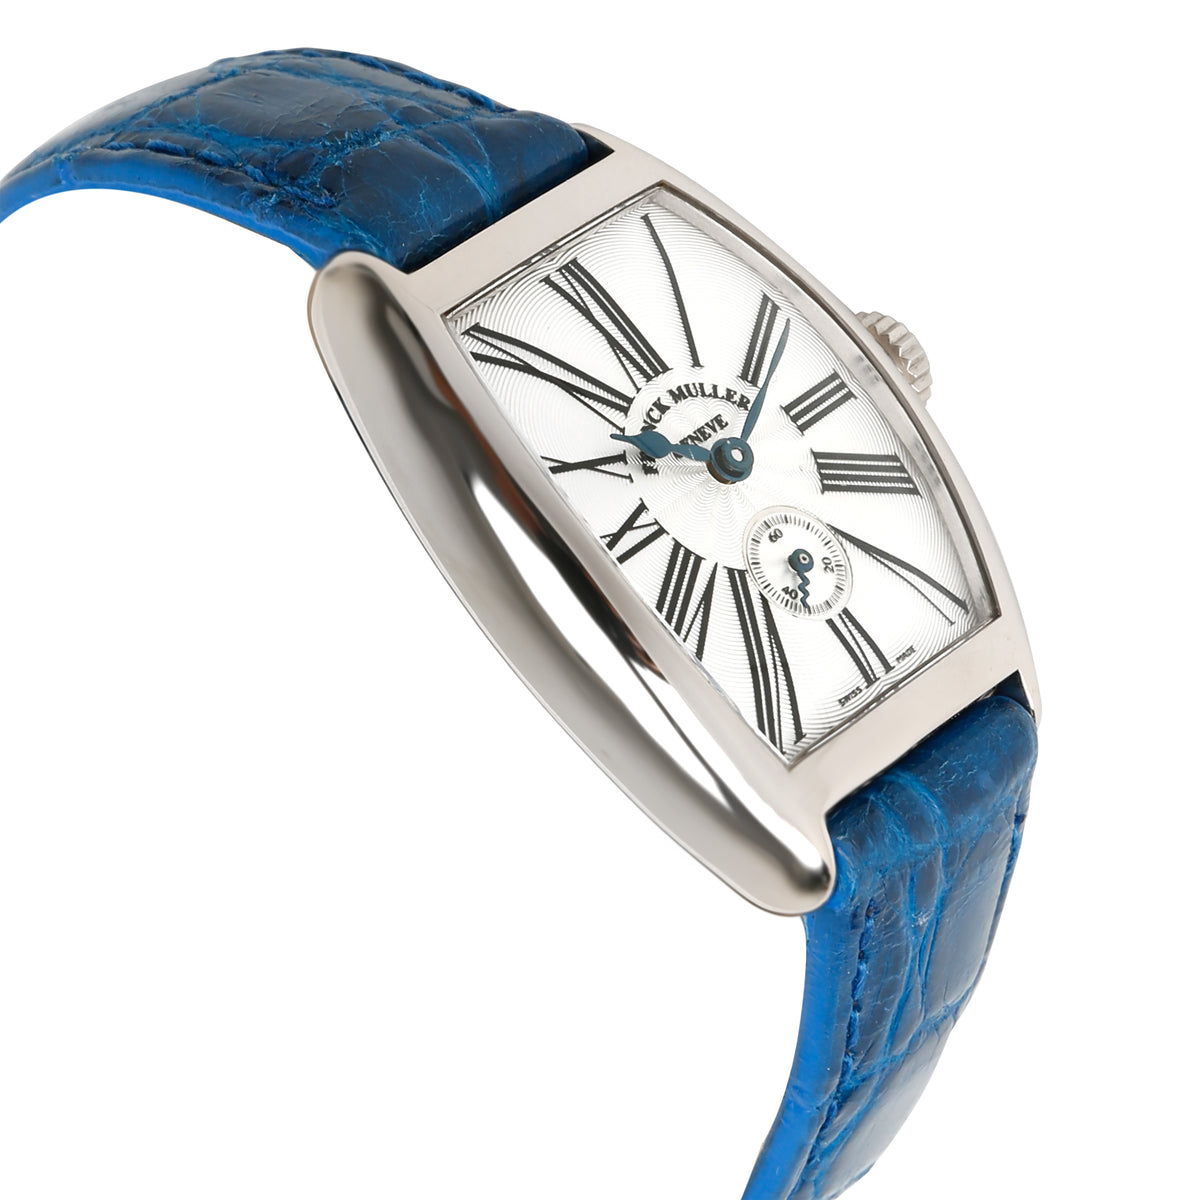 Franck Muller Cintree Curvex 1750 S6 Women's Watch in 18kt White Gold